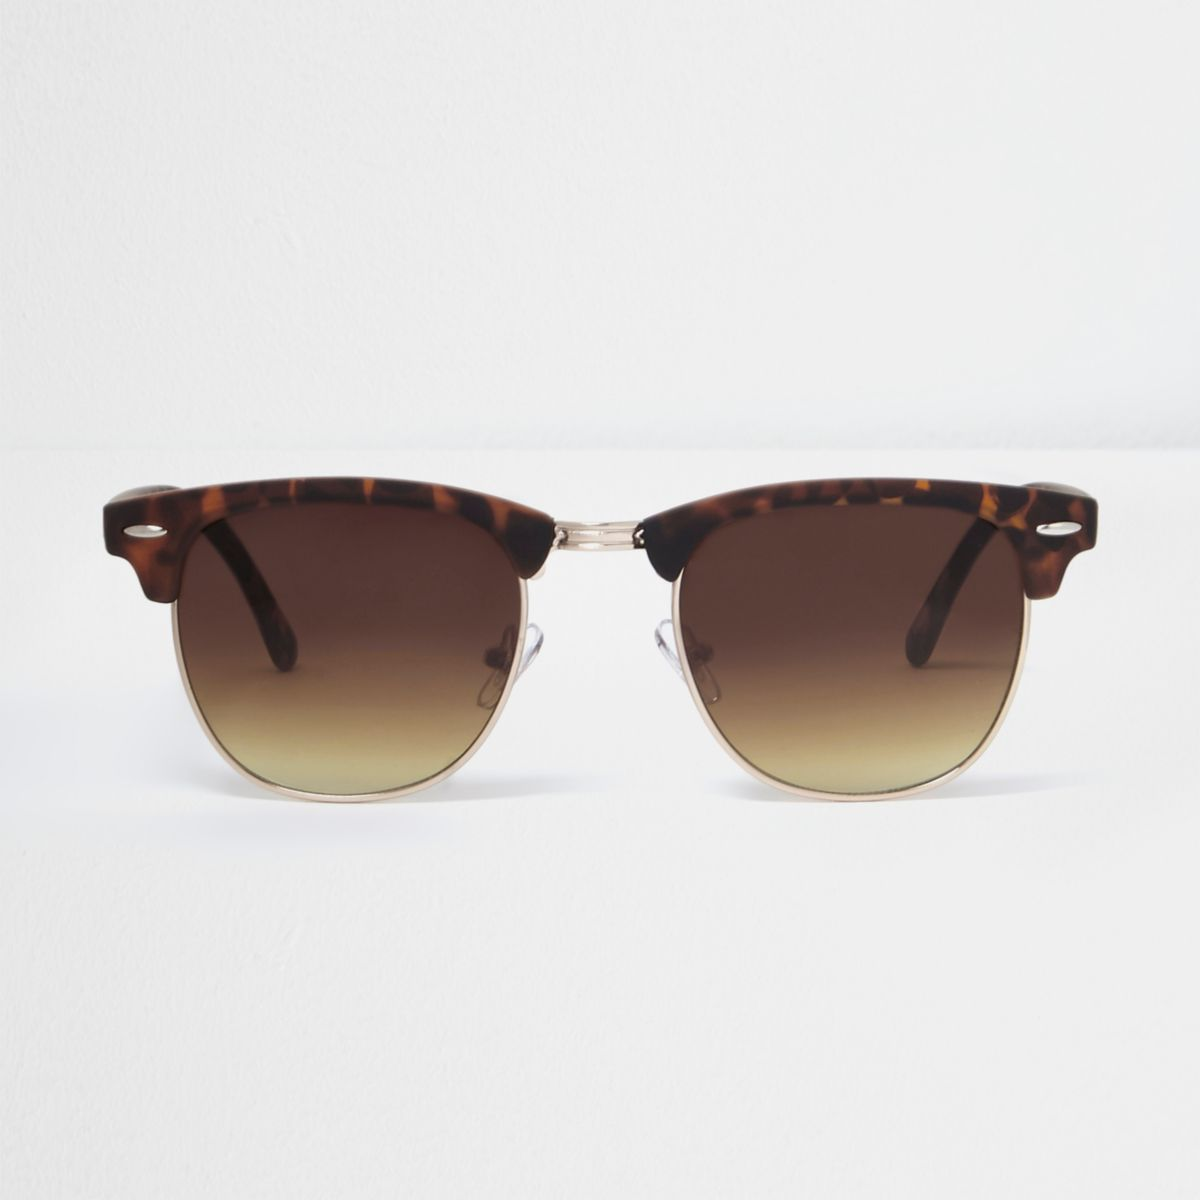 Brown tortoiseshell retro sunglasses